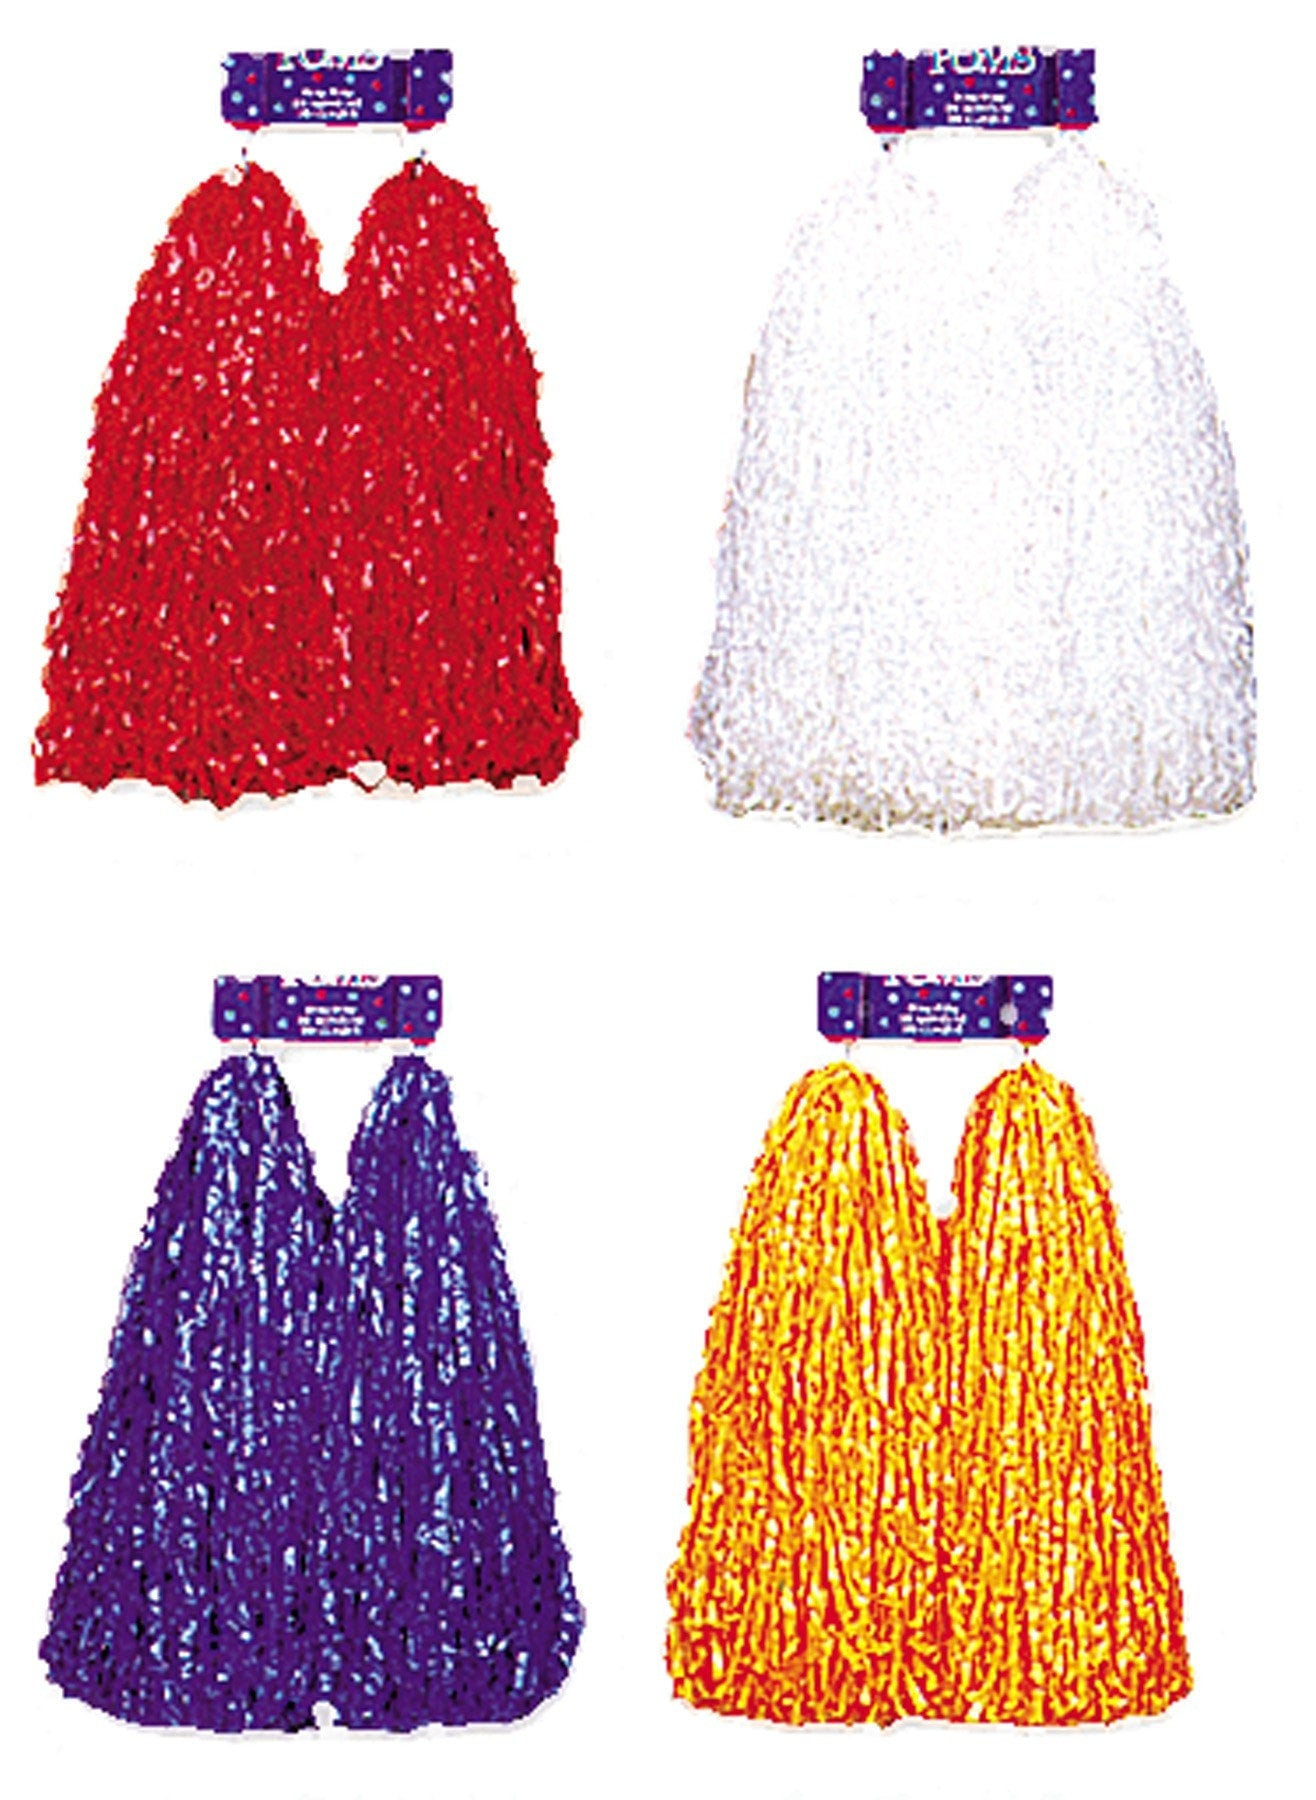 Morris Pom Poms Plastic White Cheer - MaxWigs